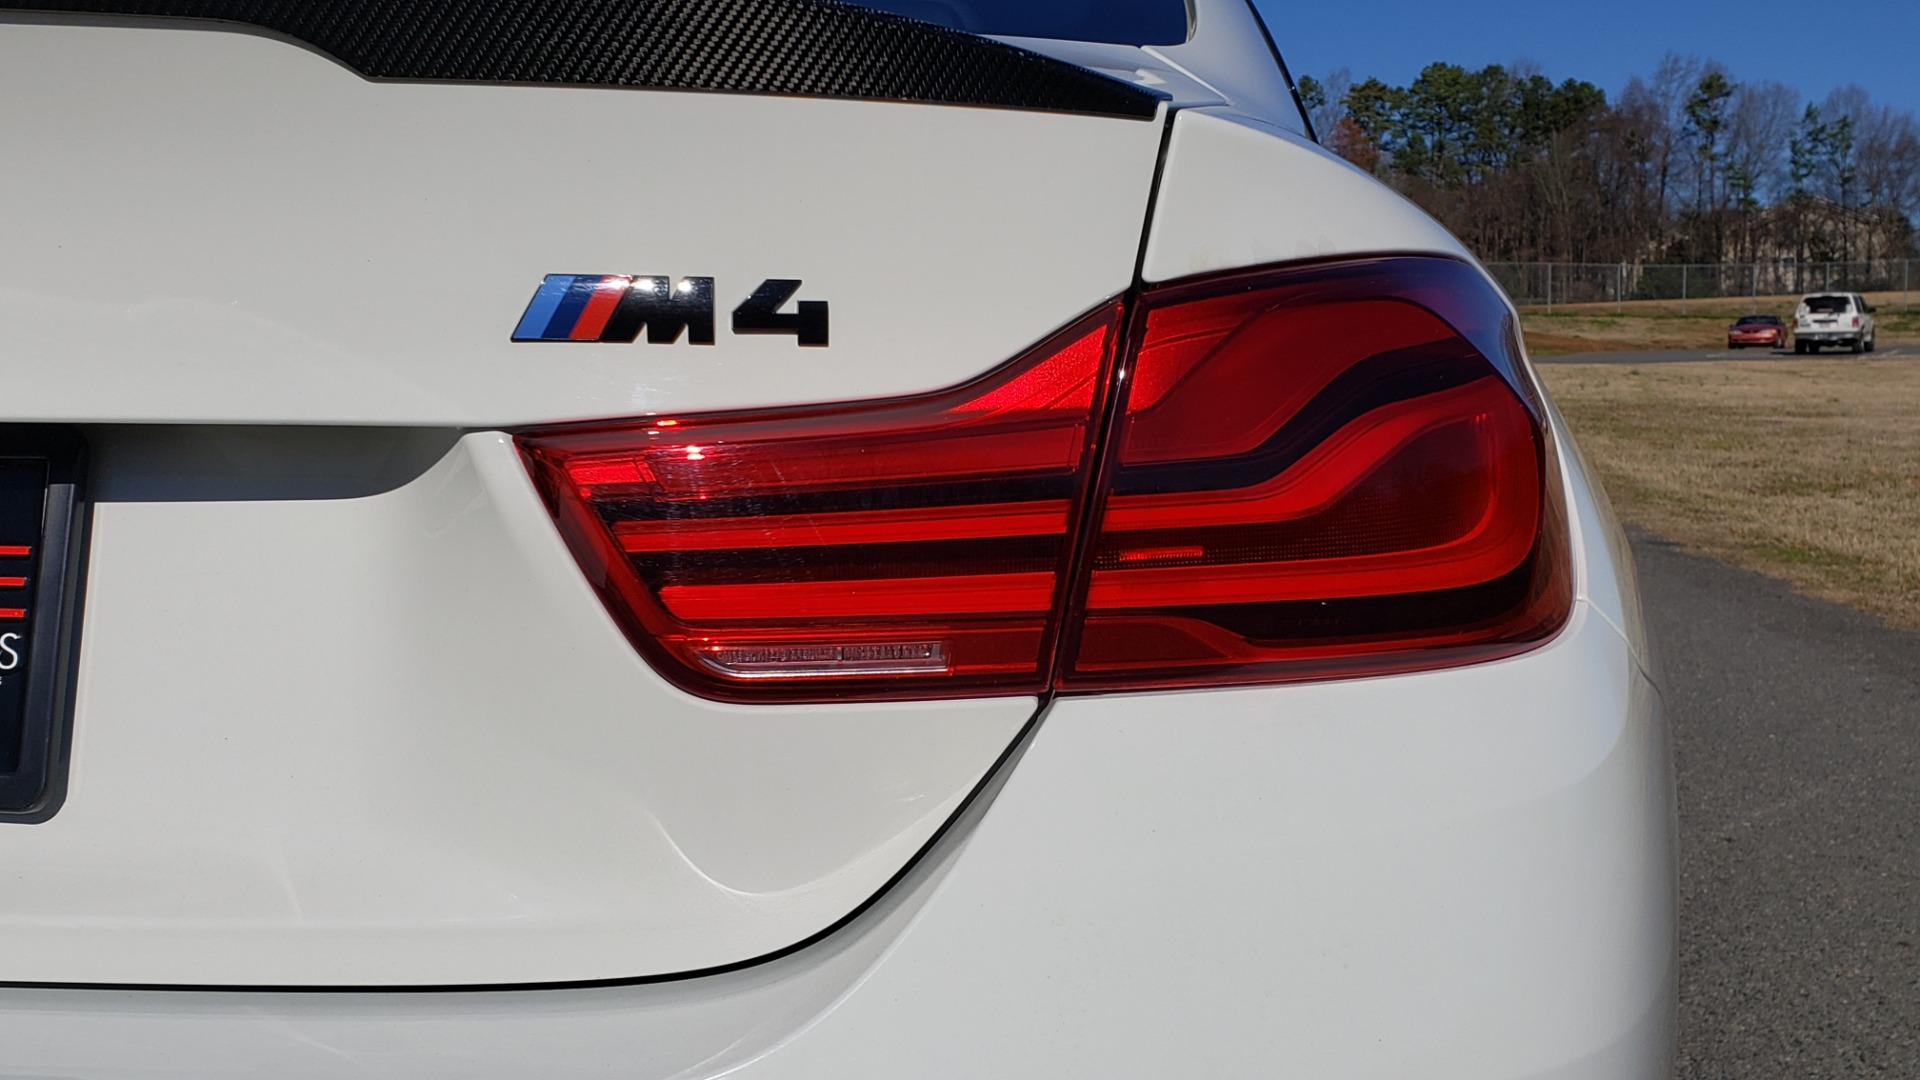 Used 2018 BMW M4 COMP PKG / EXEC / M-DRIVER / PARK CNTRL / ACTIVE BLIND SPOT for sale Sold at Formula Imports in Charlotte NC 28227 29